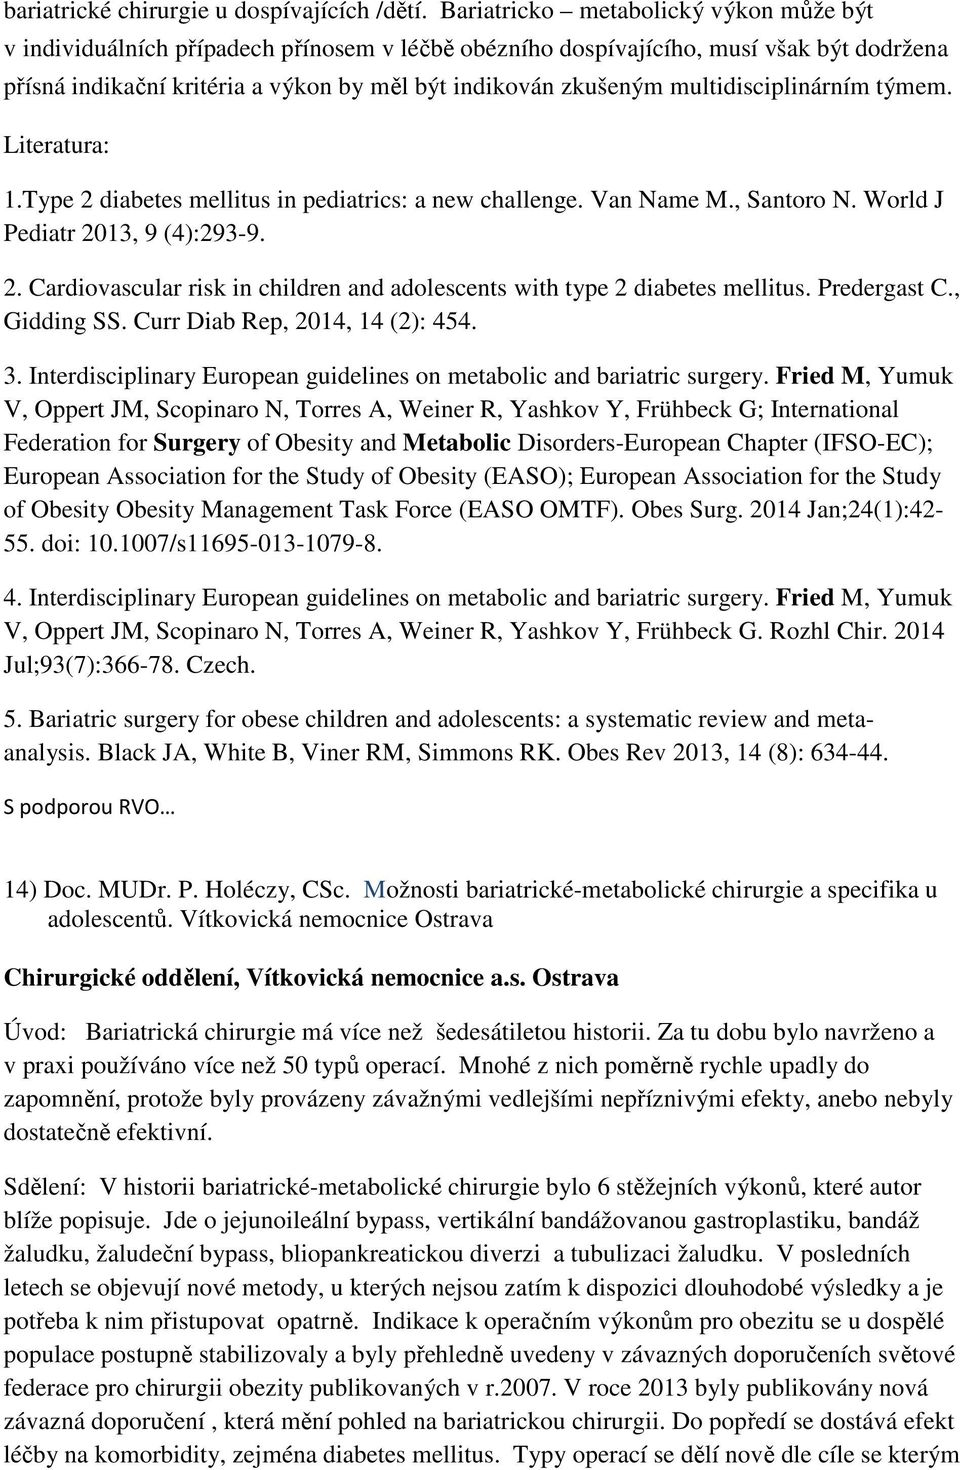 multidisciplinárním týmem. Literatura: 1.Type 2 diabetes mellitus in pediatrics: a new challenge. Van Name M., Santoro N. World J Pediatr 2013, 9 (4):293-9. 2. Cardiovascular risk in children and adolescents with type 2 diabetes mellitus.